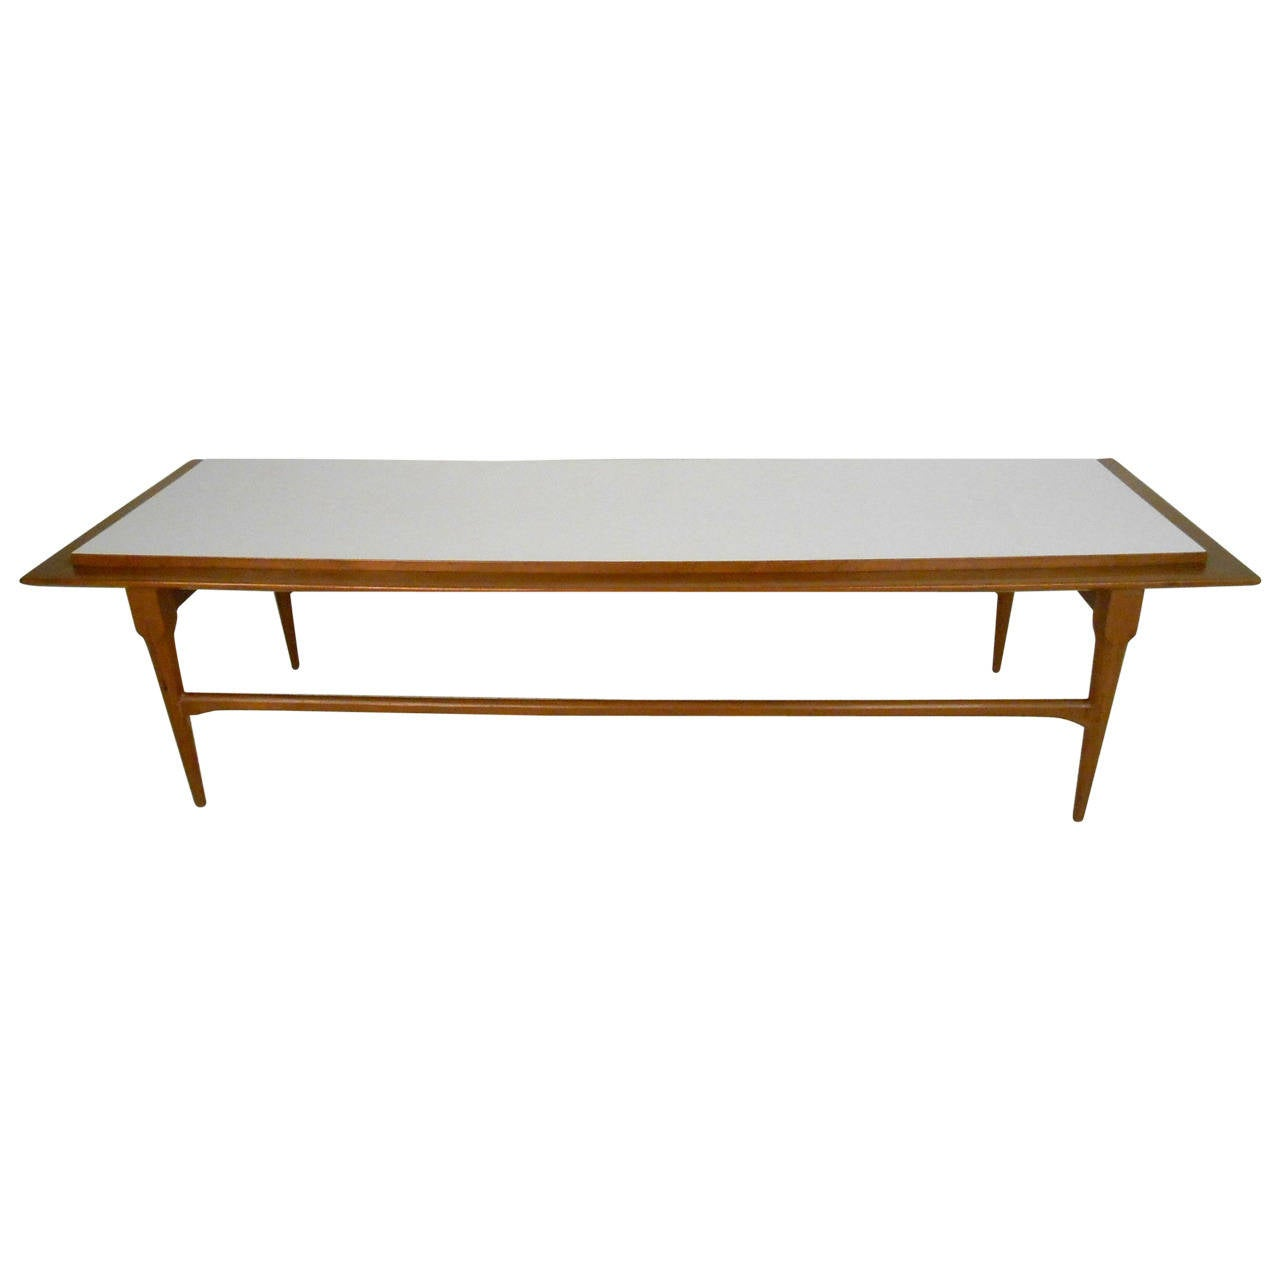 Mid century modern long coffee table for sale at 1stdibs for Modern coffee table sale